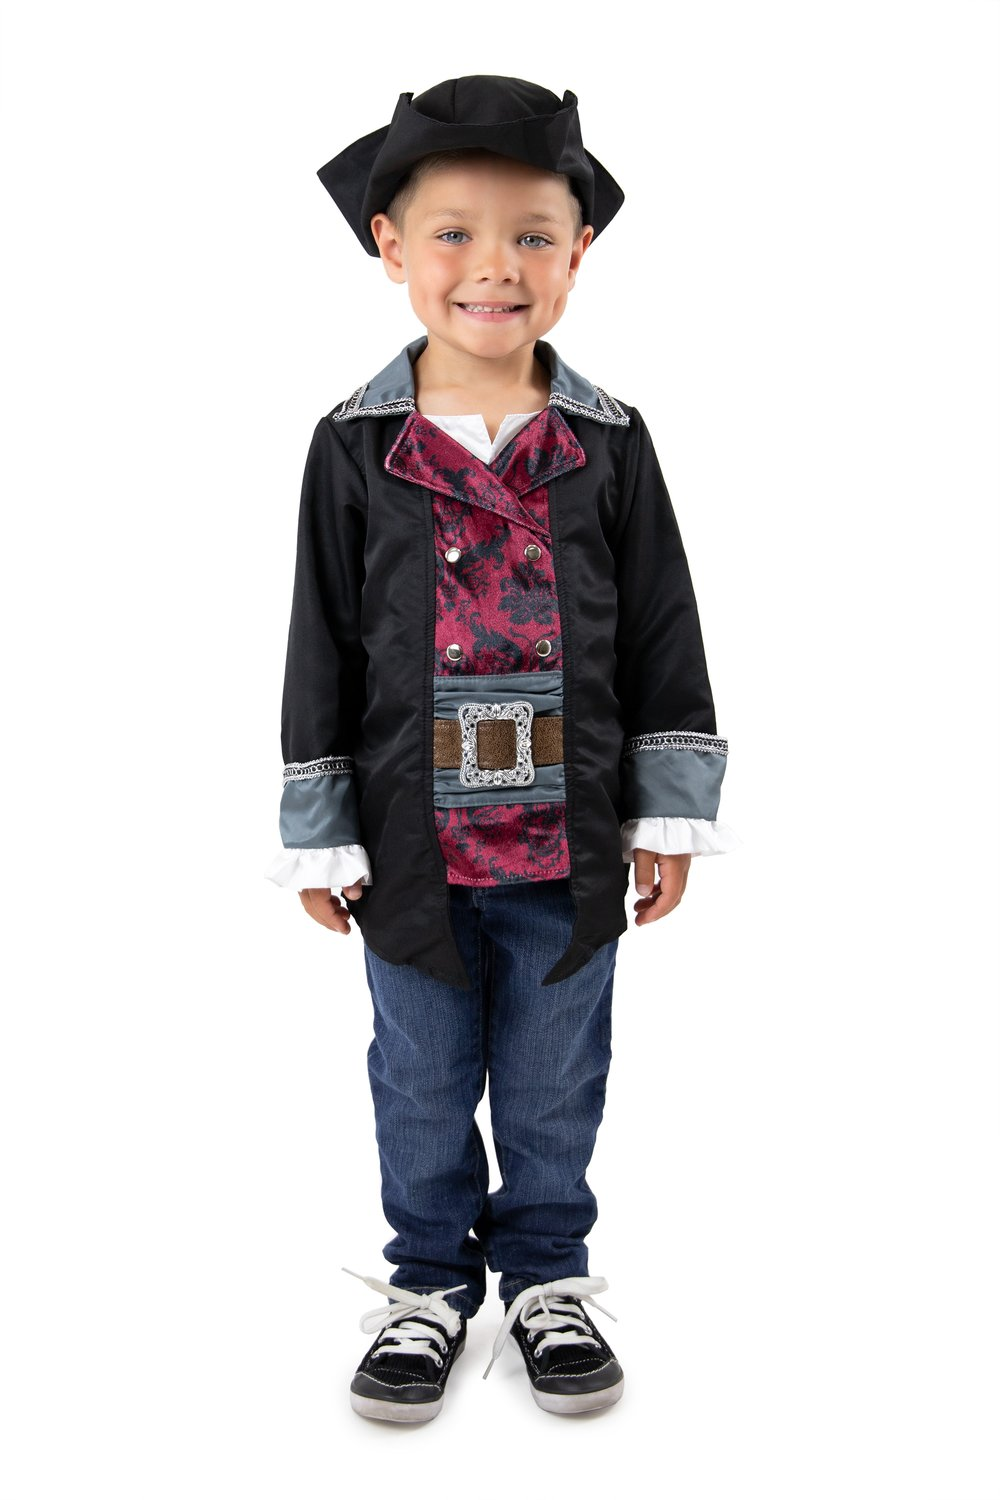 Little Adventures Pirate Captain Dress Up Costume